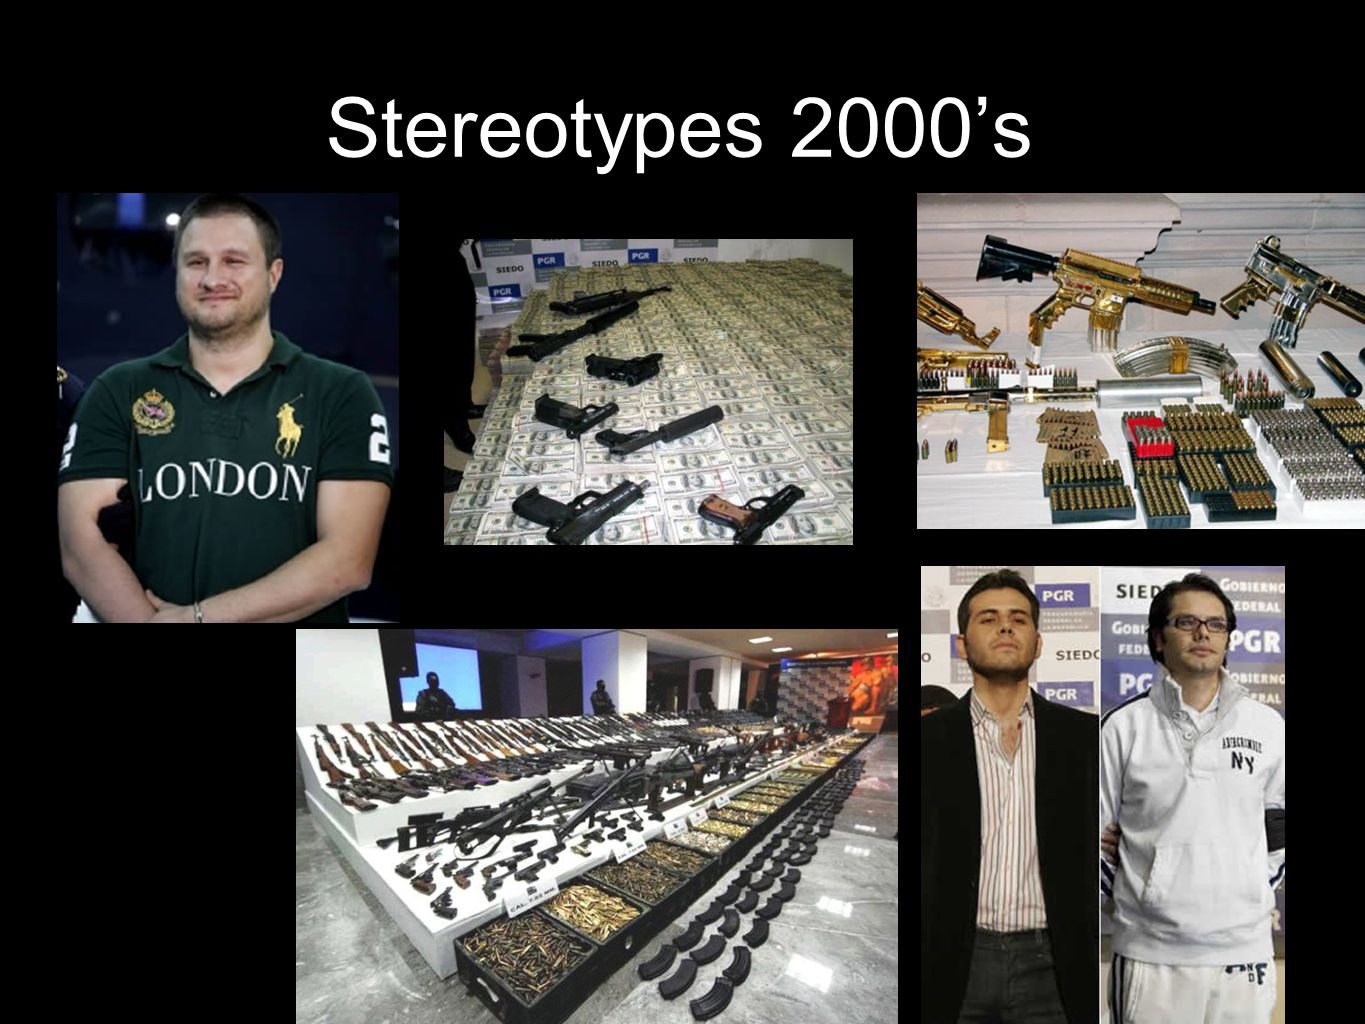 Stereotypes 2000's